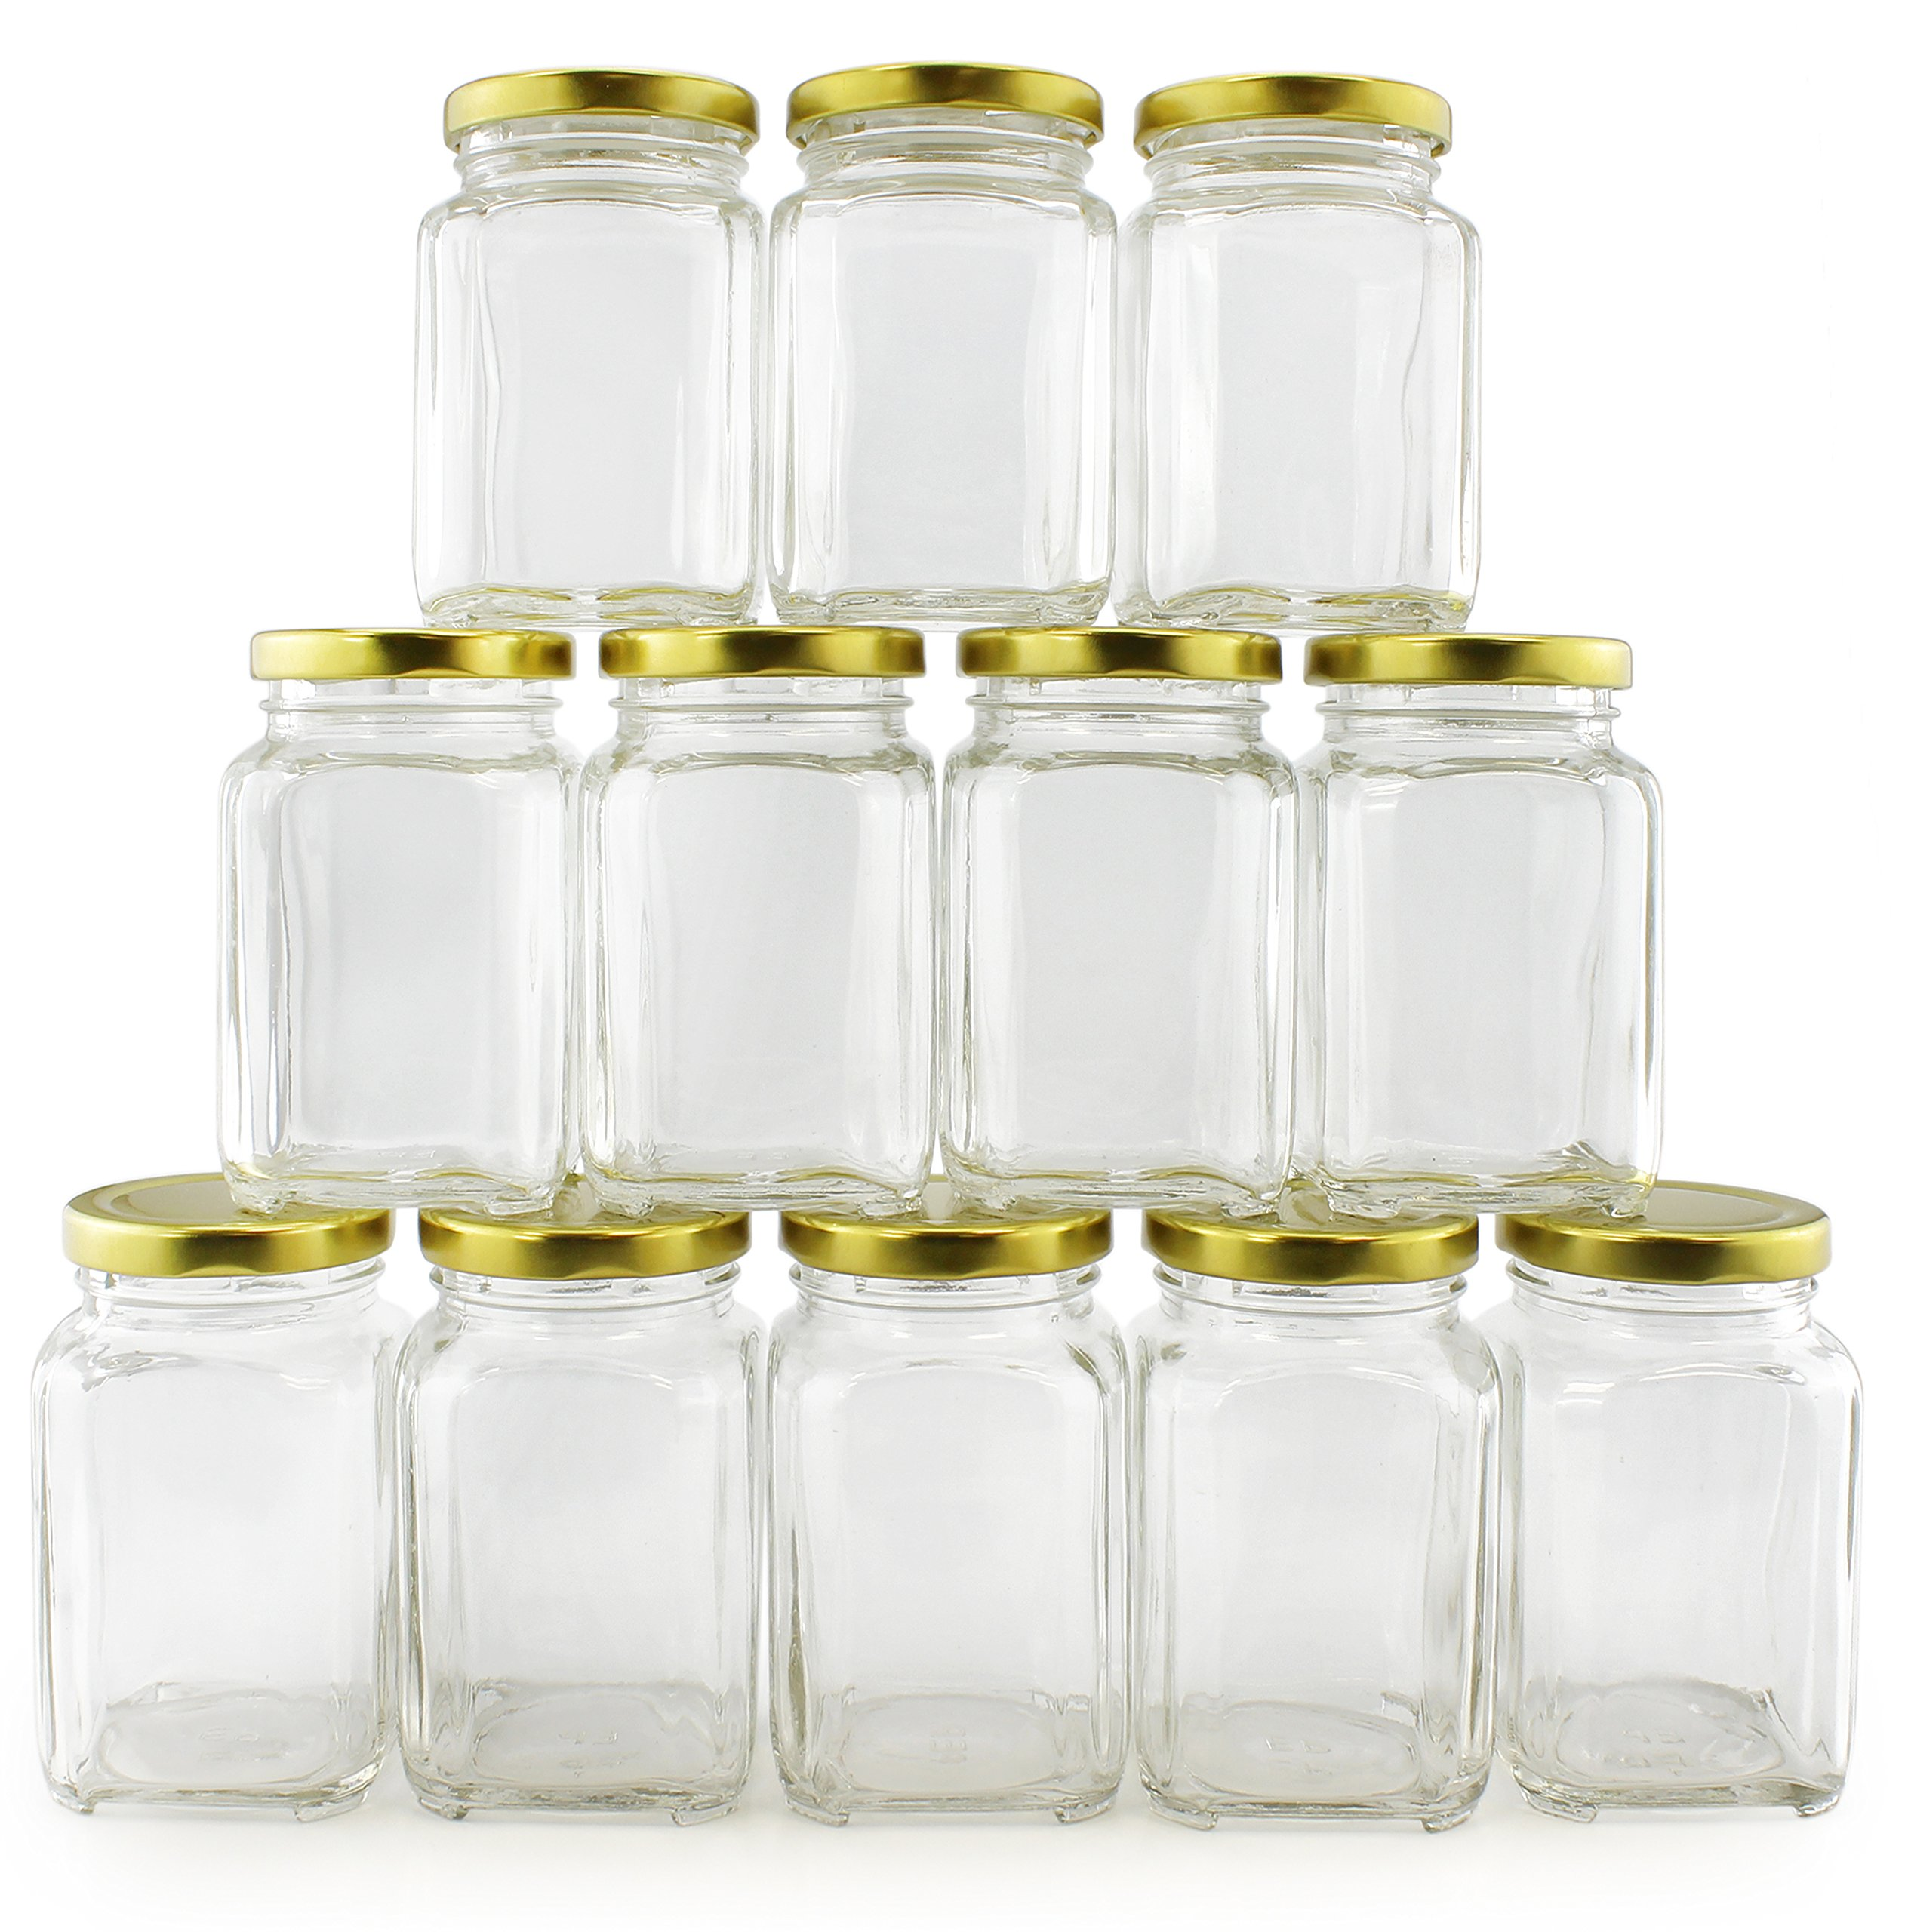 8-Ounce Victorian Square Glass Jars (12-Pack); Retro-Style Jars w/Gold Lids for Spices, Gifts & More